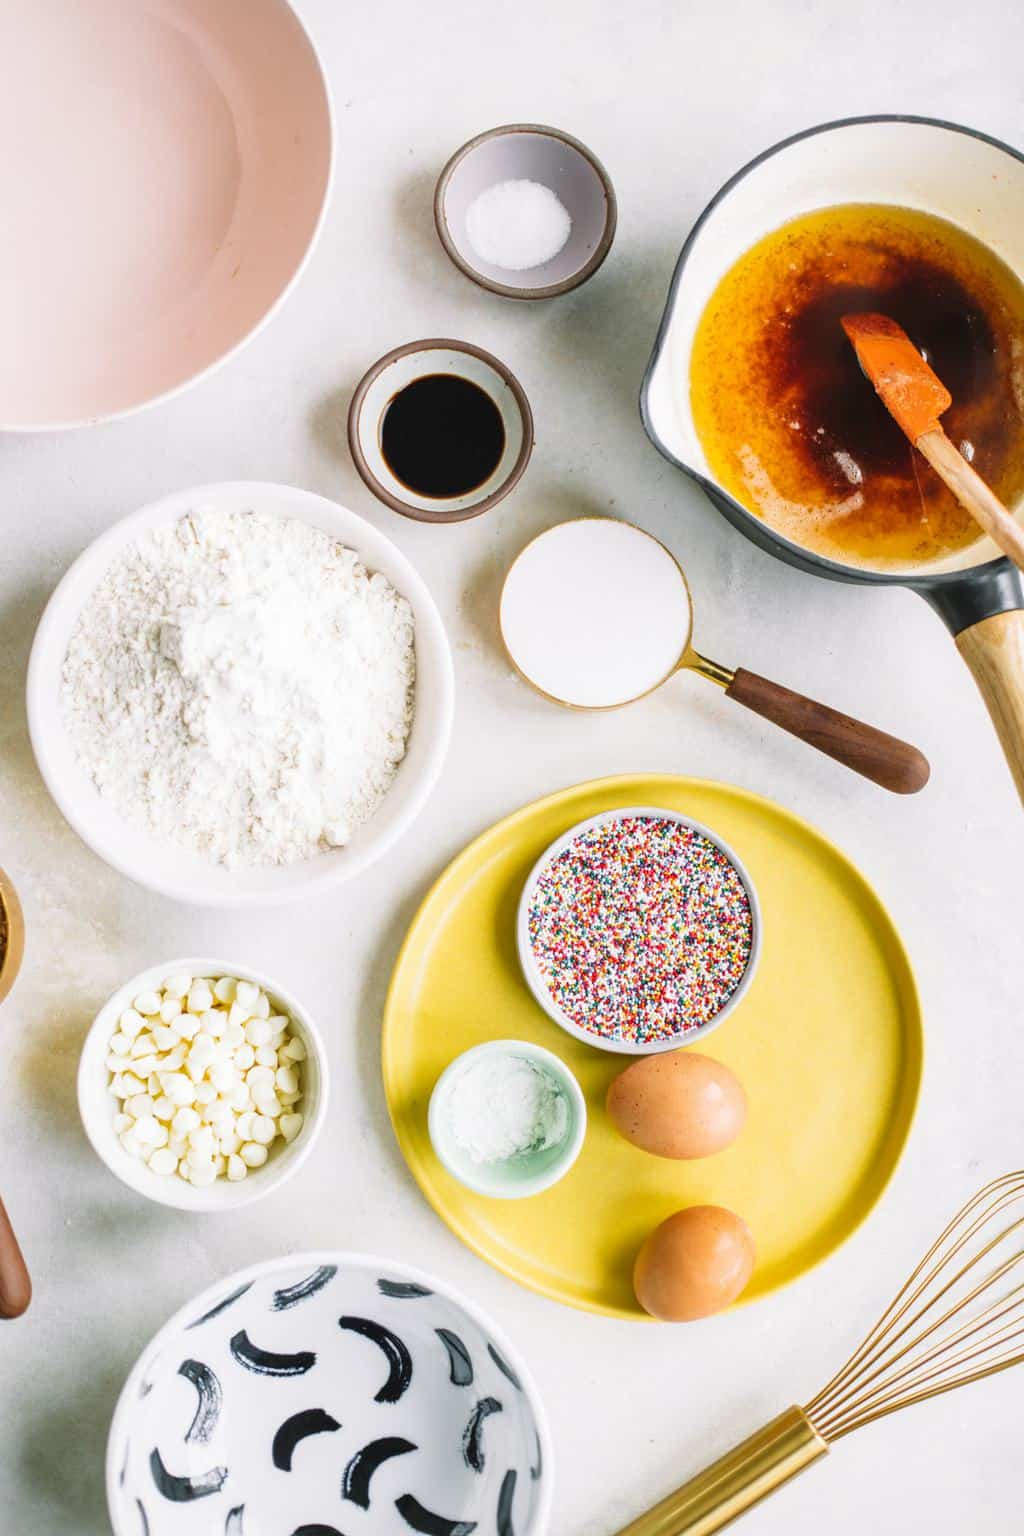 Ingredients for white chocolate sprinkle blondies in colorful bowls.